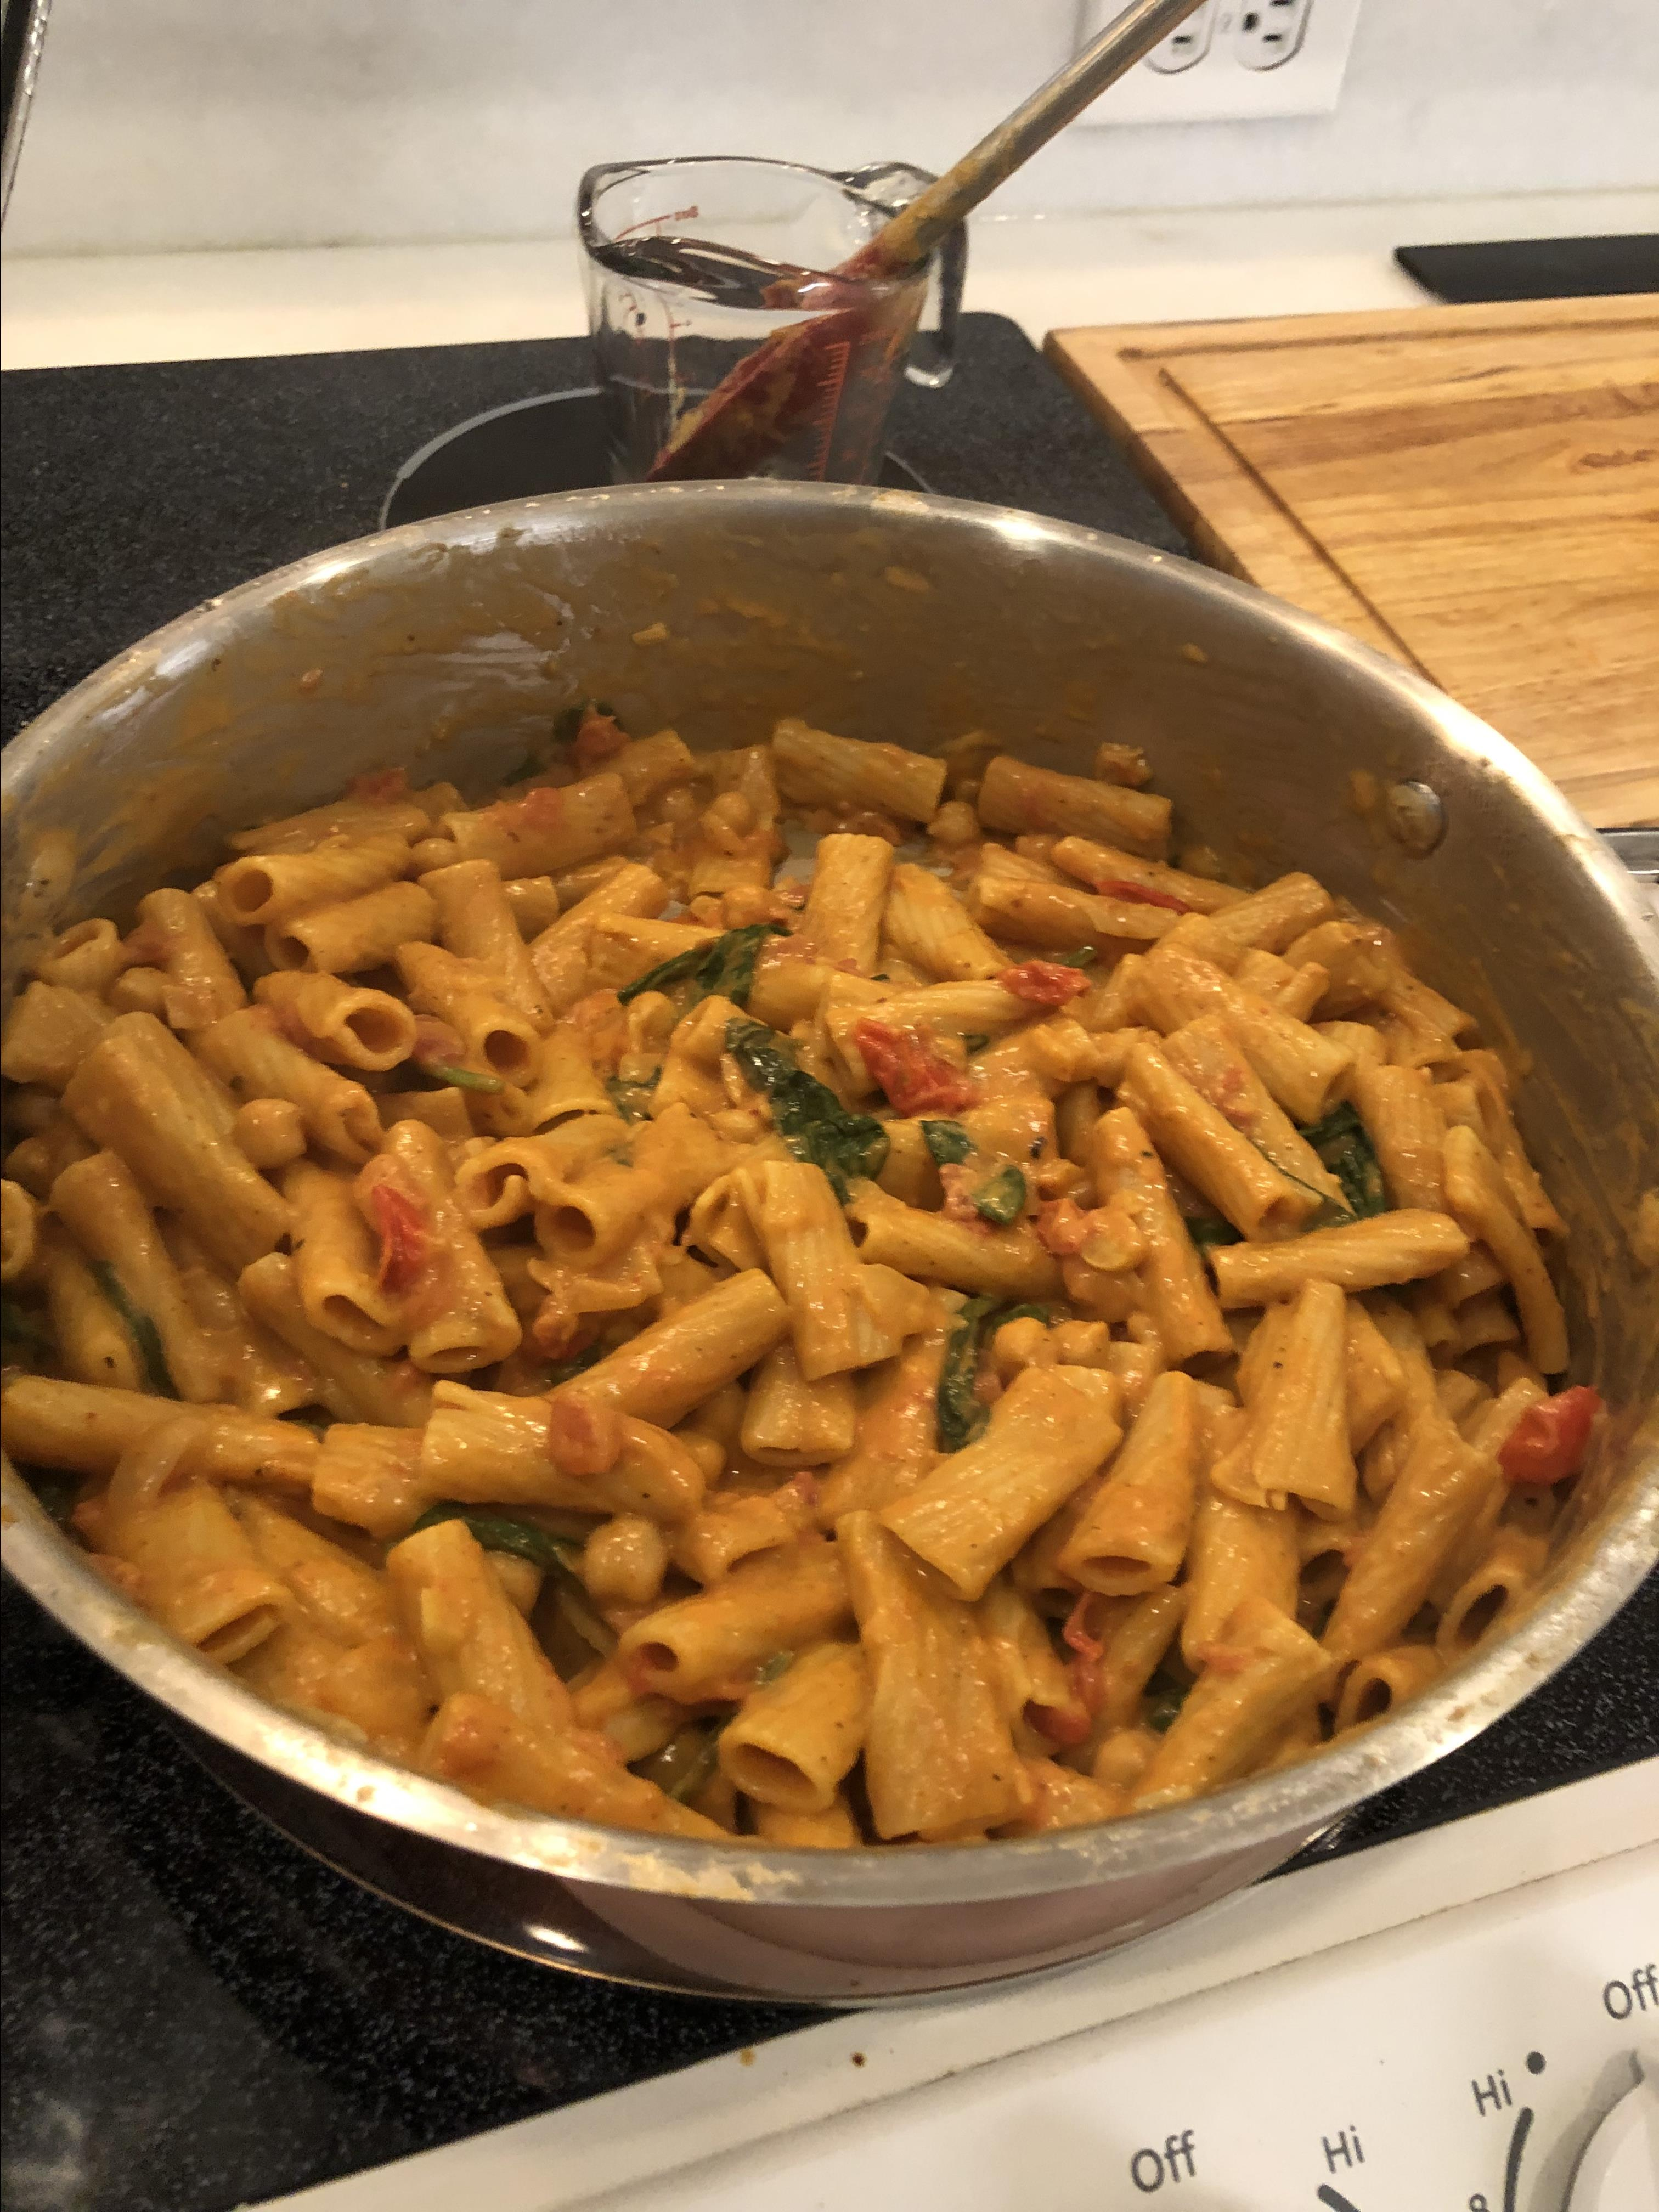 Vegan One-Pot Coconut Curry with Pasta and Vegetables KatieMarieWW